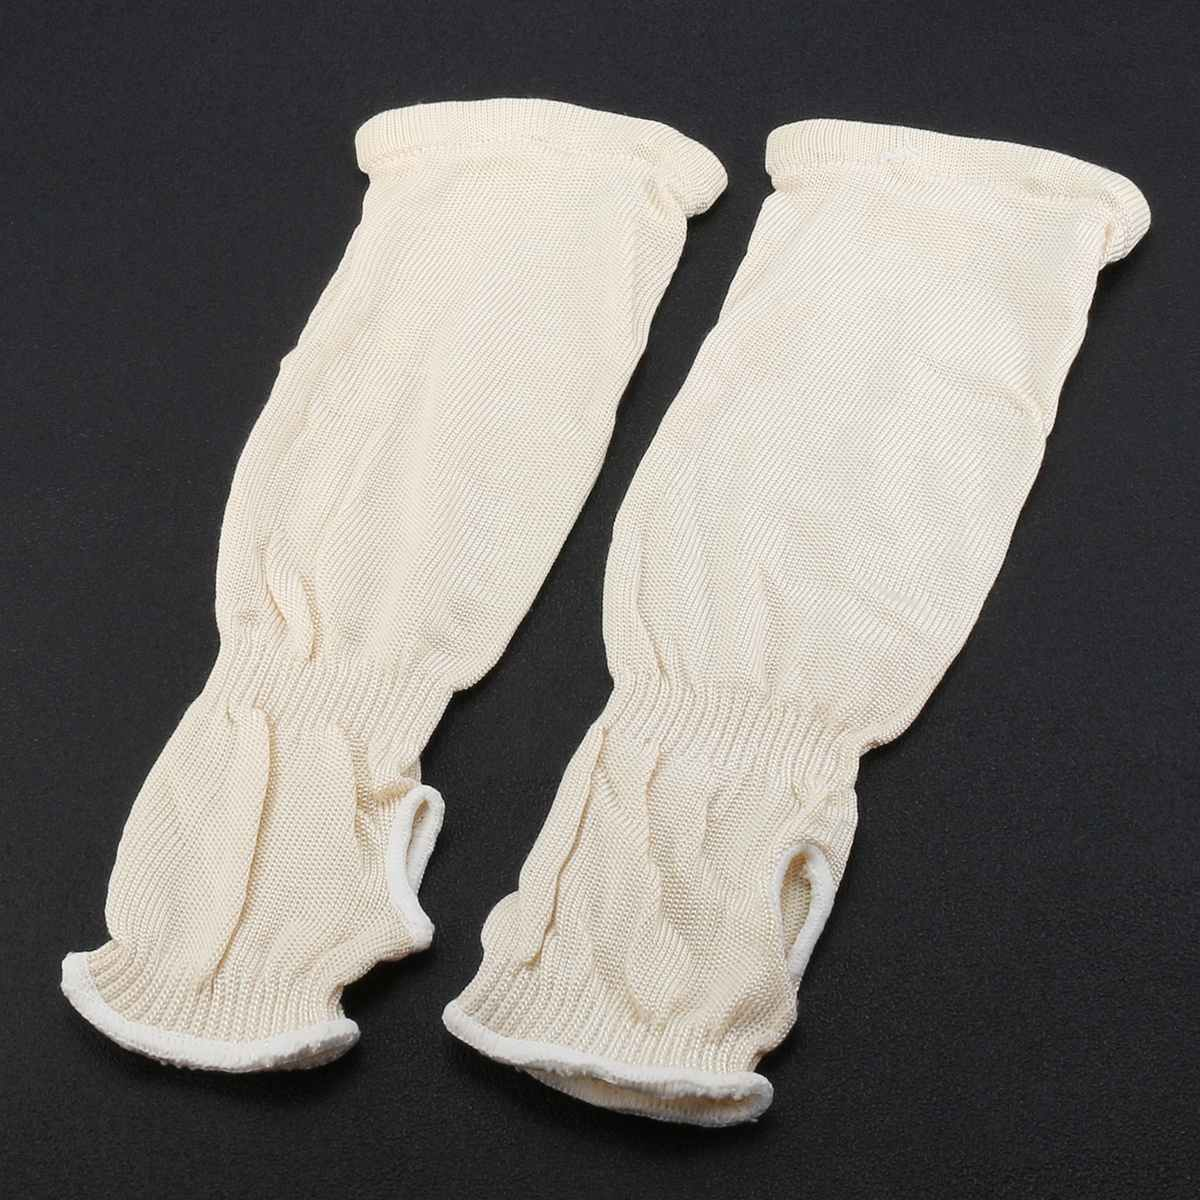 1 Pair Welding Arm Sleeve Knit Heat Protection Cut Resistant Safety Denim